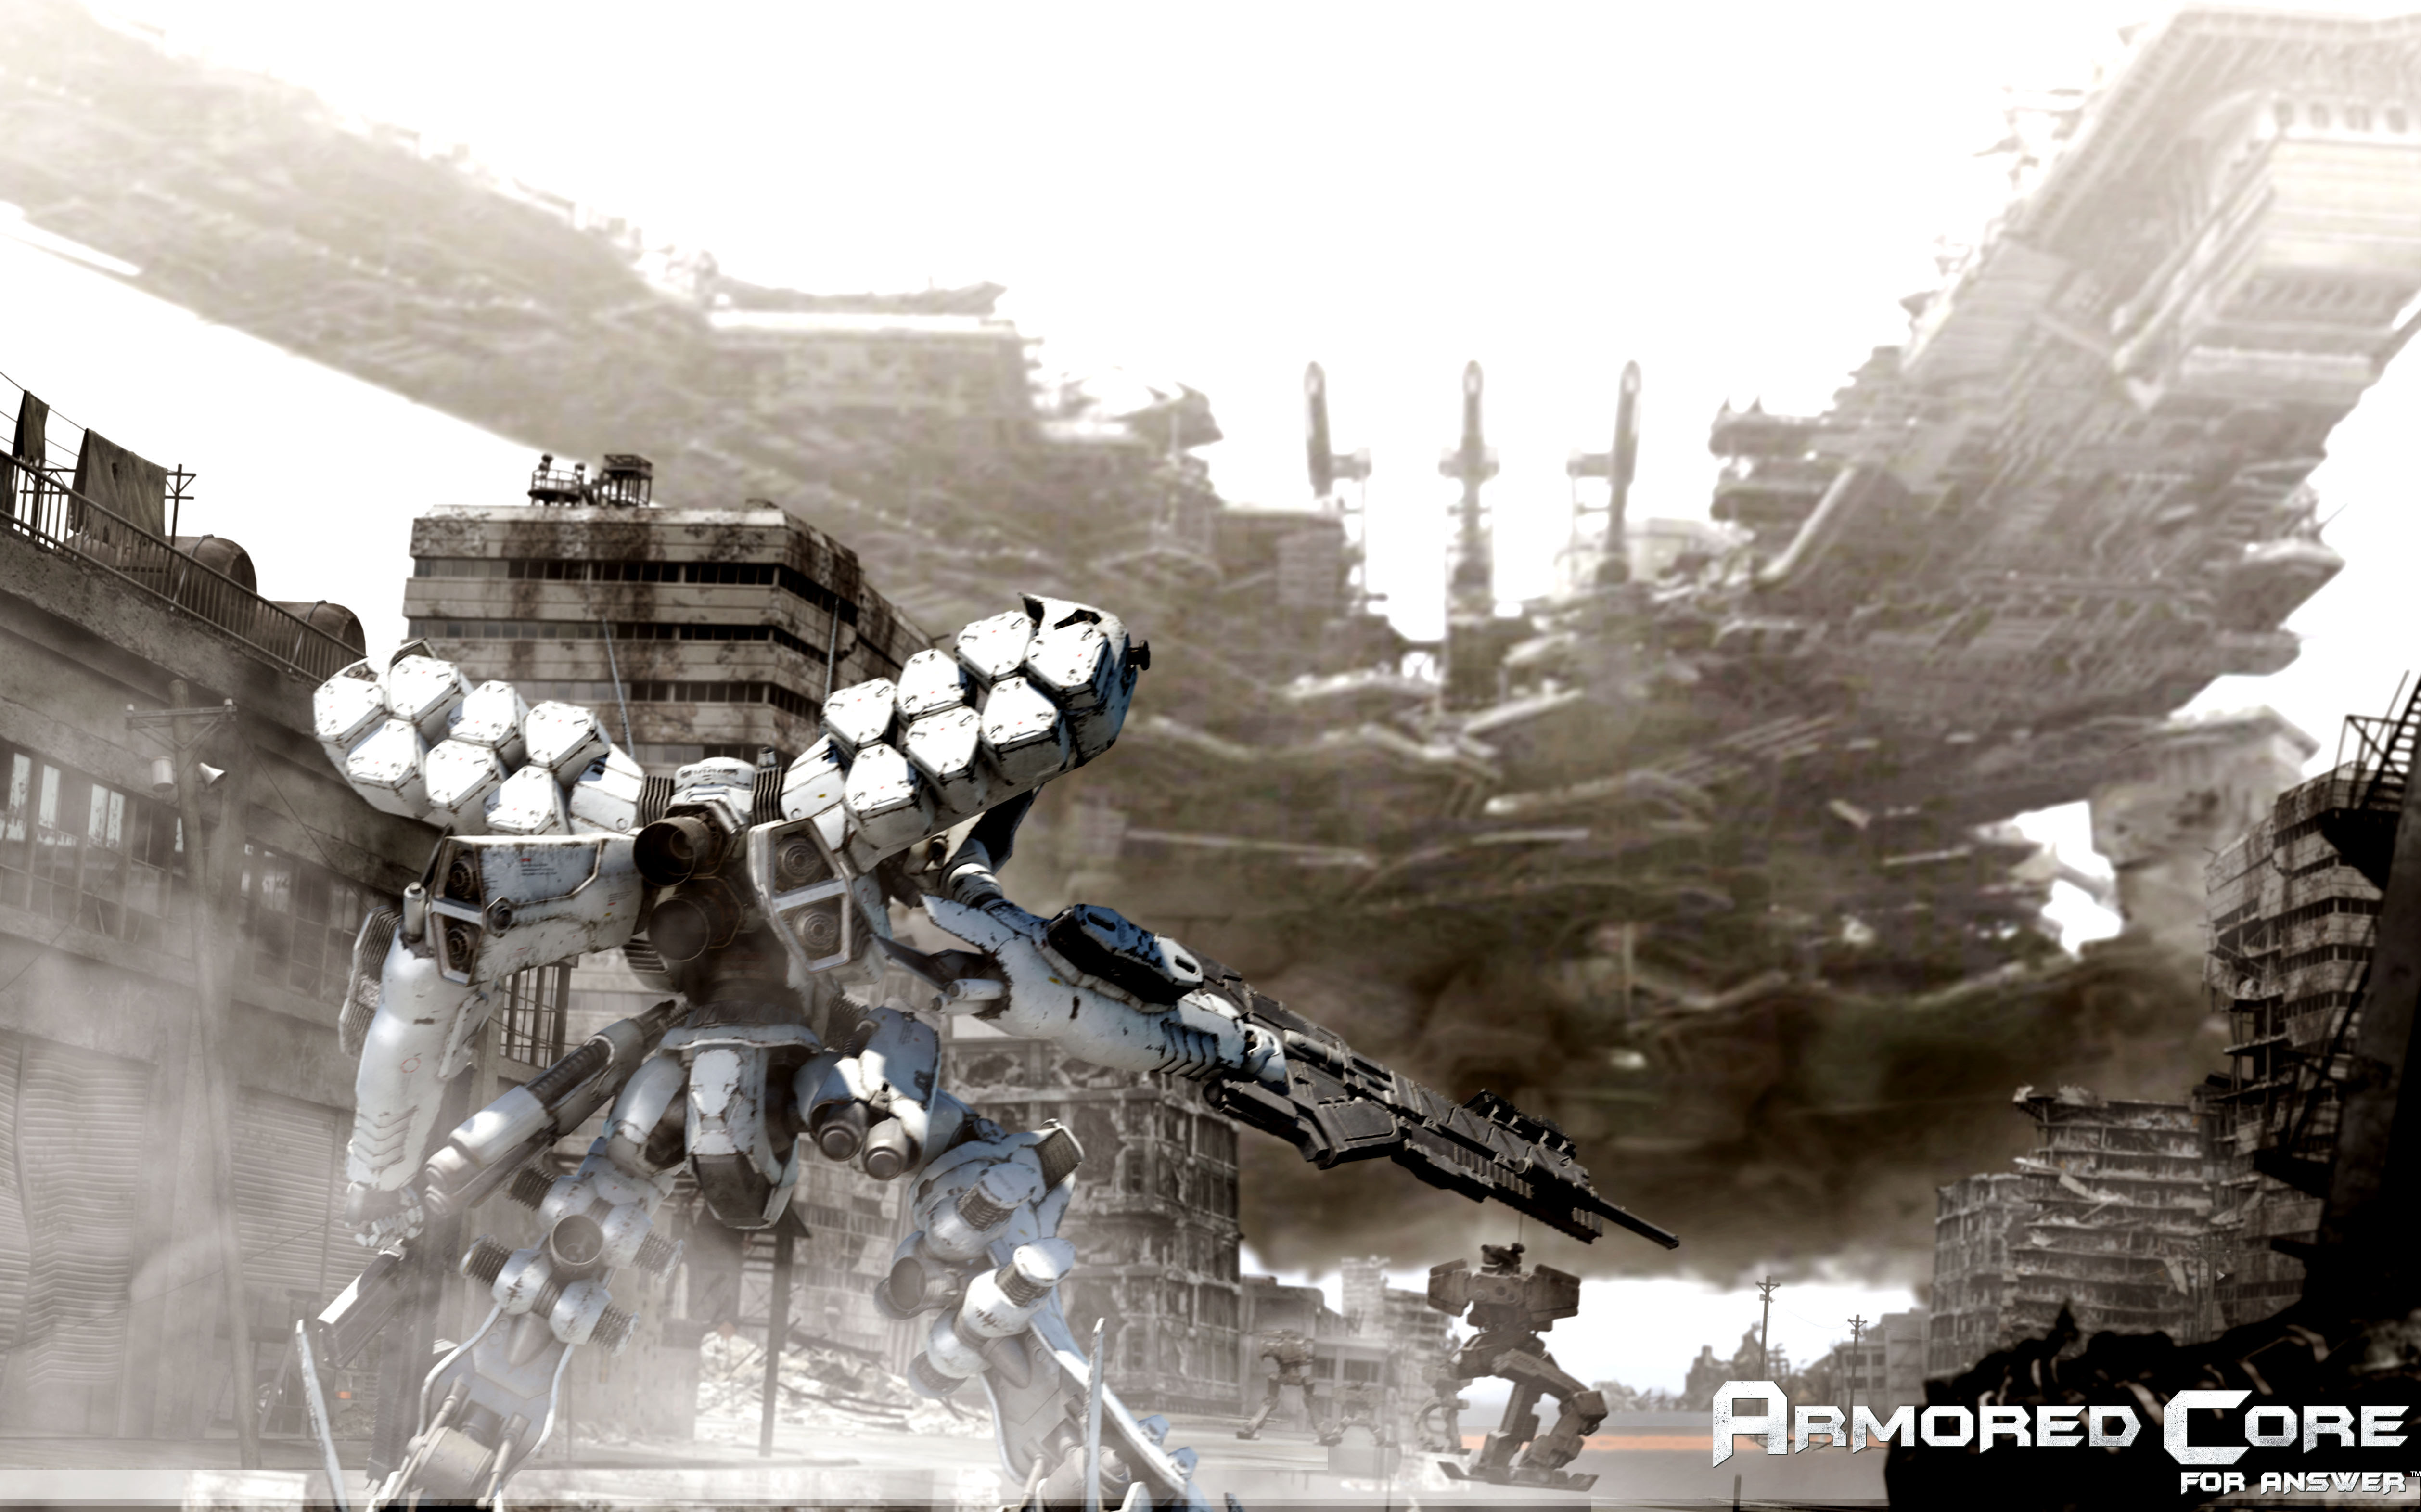 31 Armored Core HD Wallpapers | Backgrounds - Wallpaper Abyss